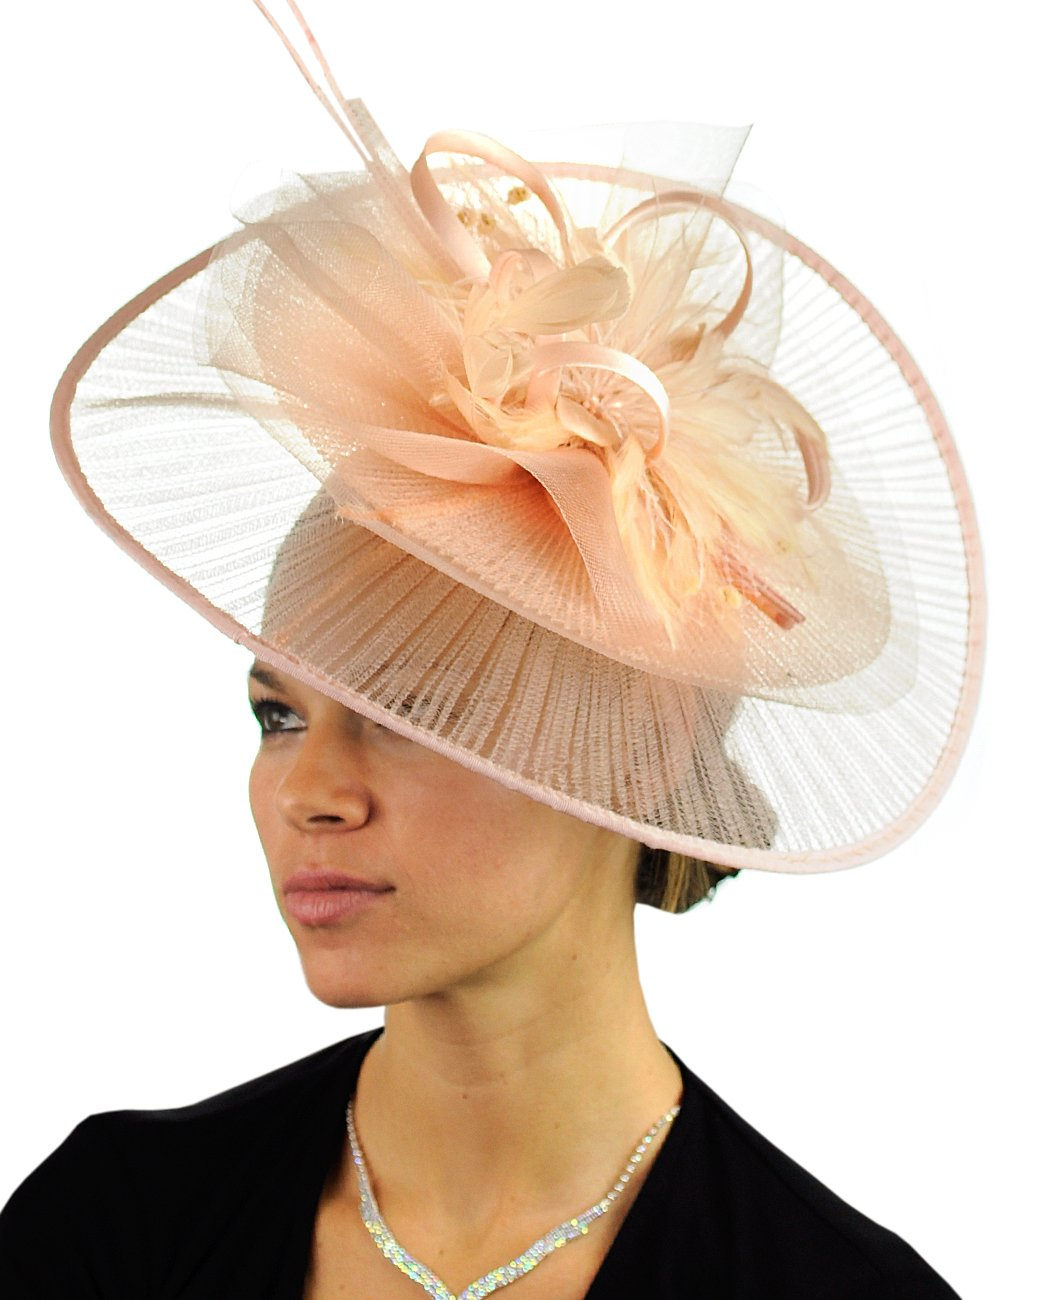 C.C Cocktail Fashion Sinamay Fascinator Hat Feather & Flower Design S102450, Champagne